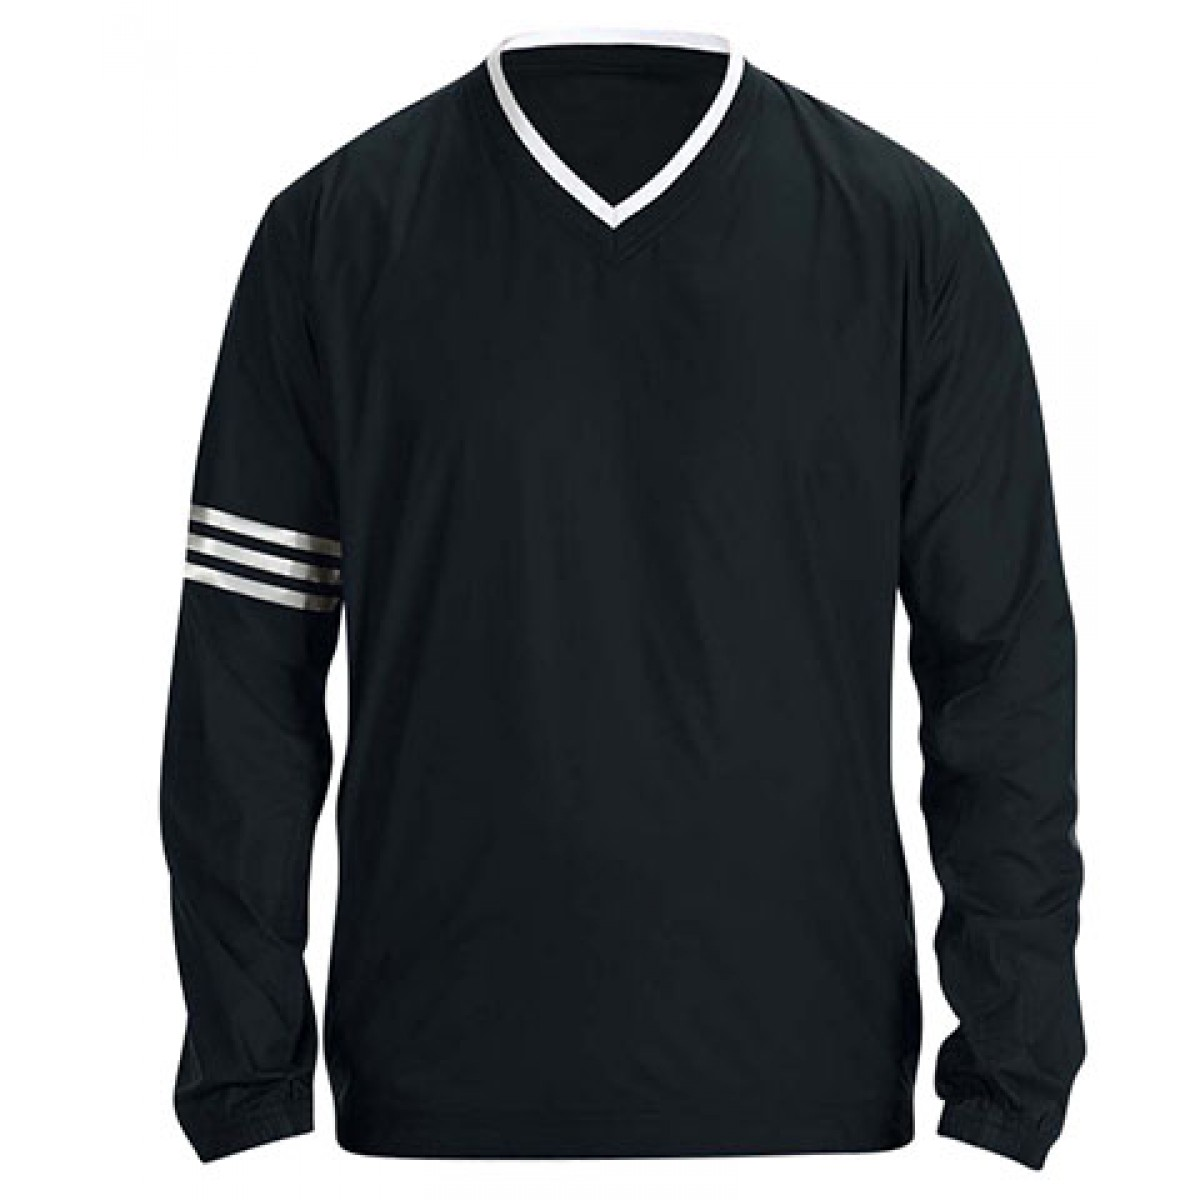 Adidas ClimaLite V-Neck Long Sleeve Wind Shirt-Black-L